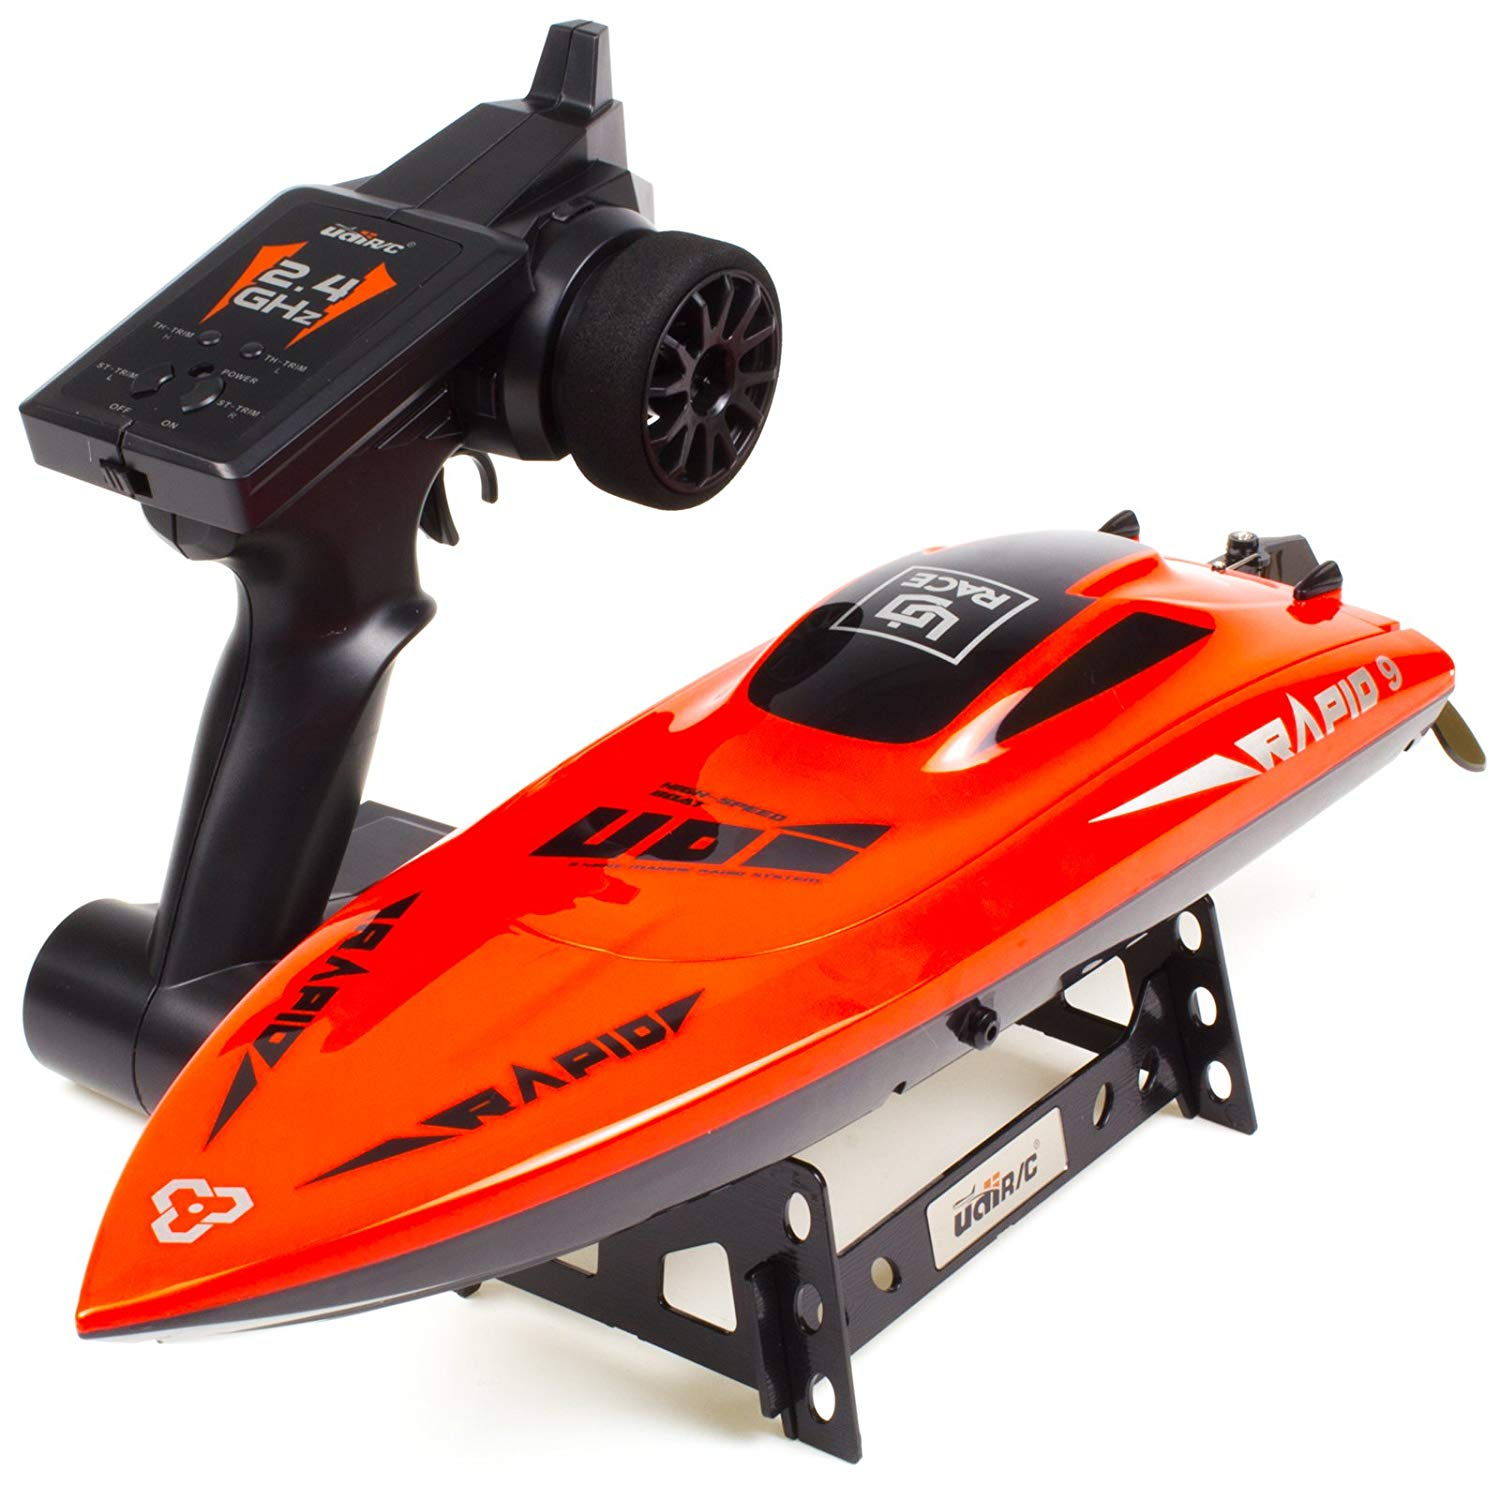 UDIRC 2.4Ghz RC Racing Boat 30KM/H High Speed Electronic Remote Control Boat for Kids/Audlt